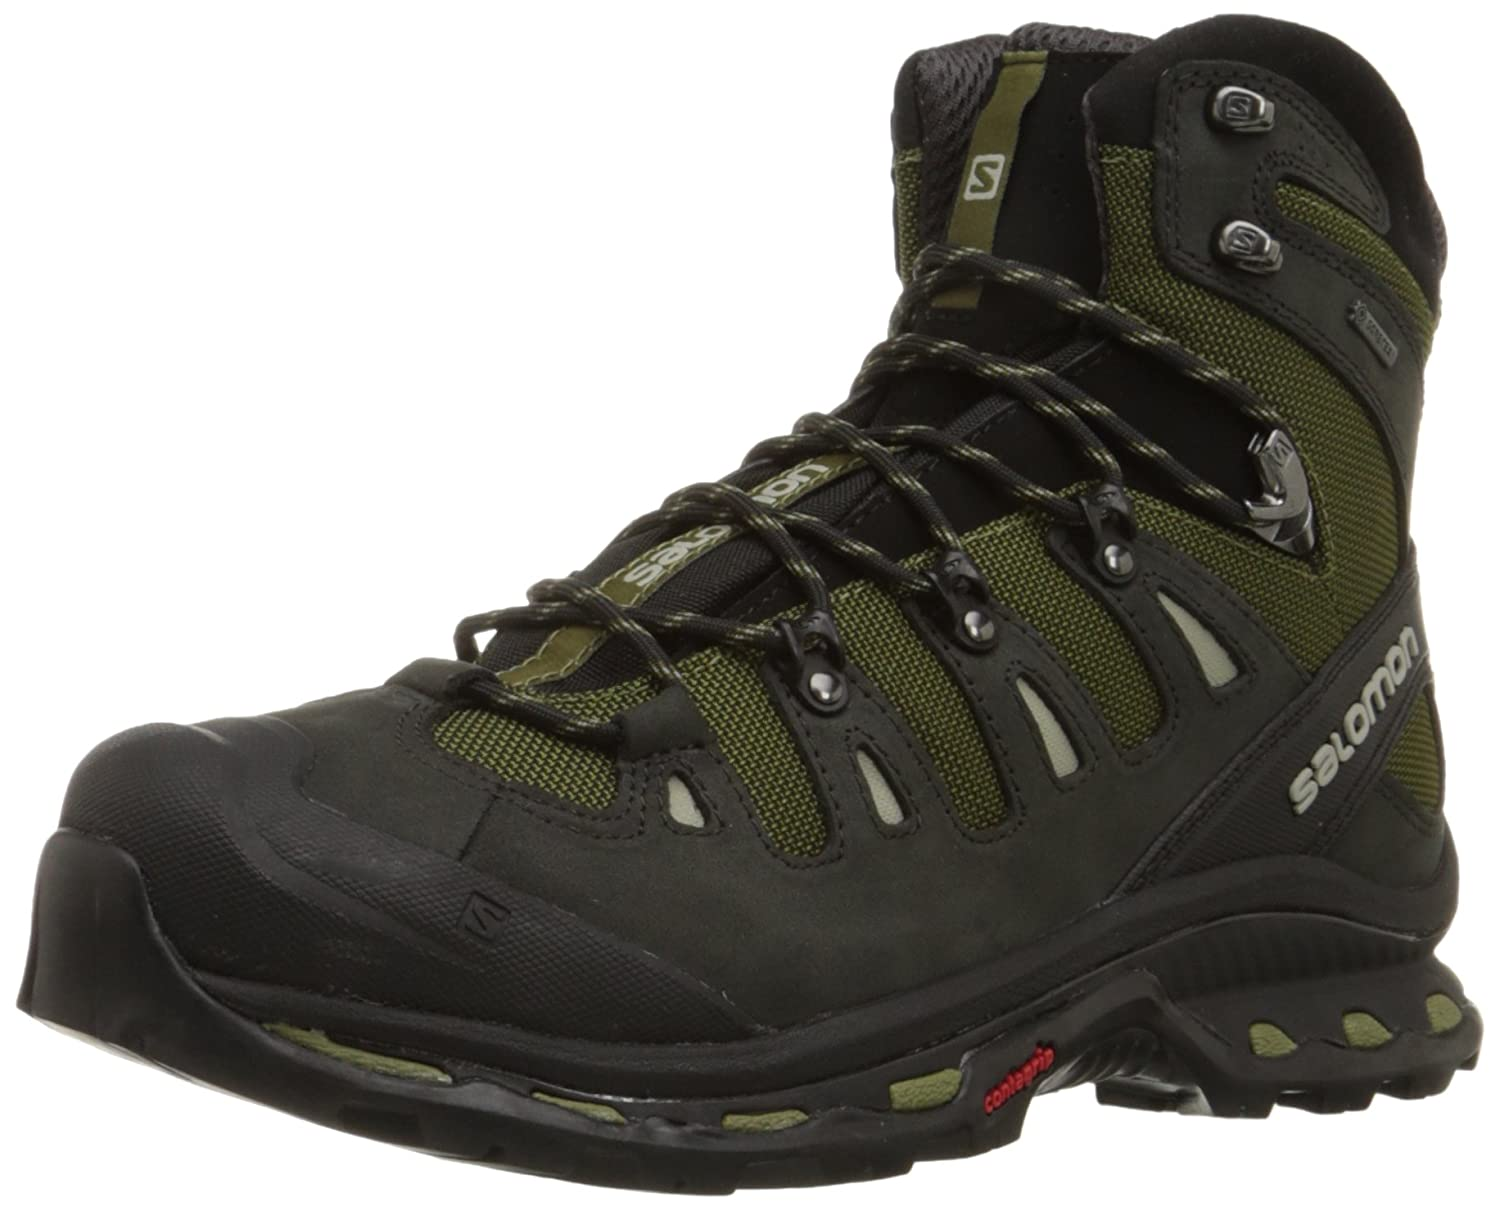 69f020931c Salomon Quest 4D 2 GTX, Men's Walking and Hiking Boots